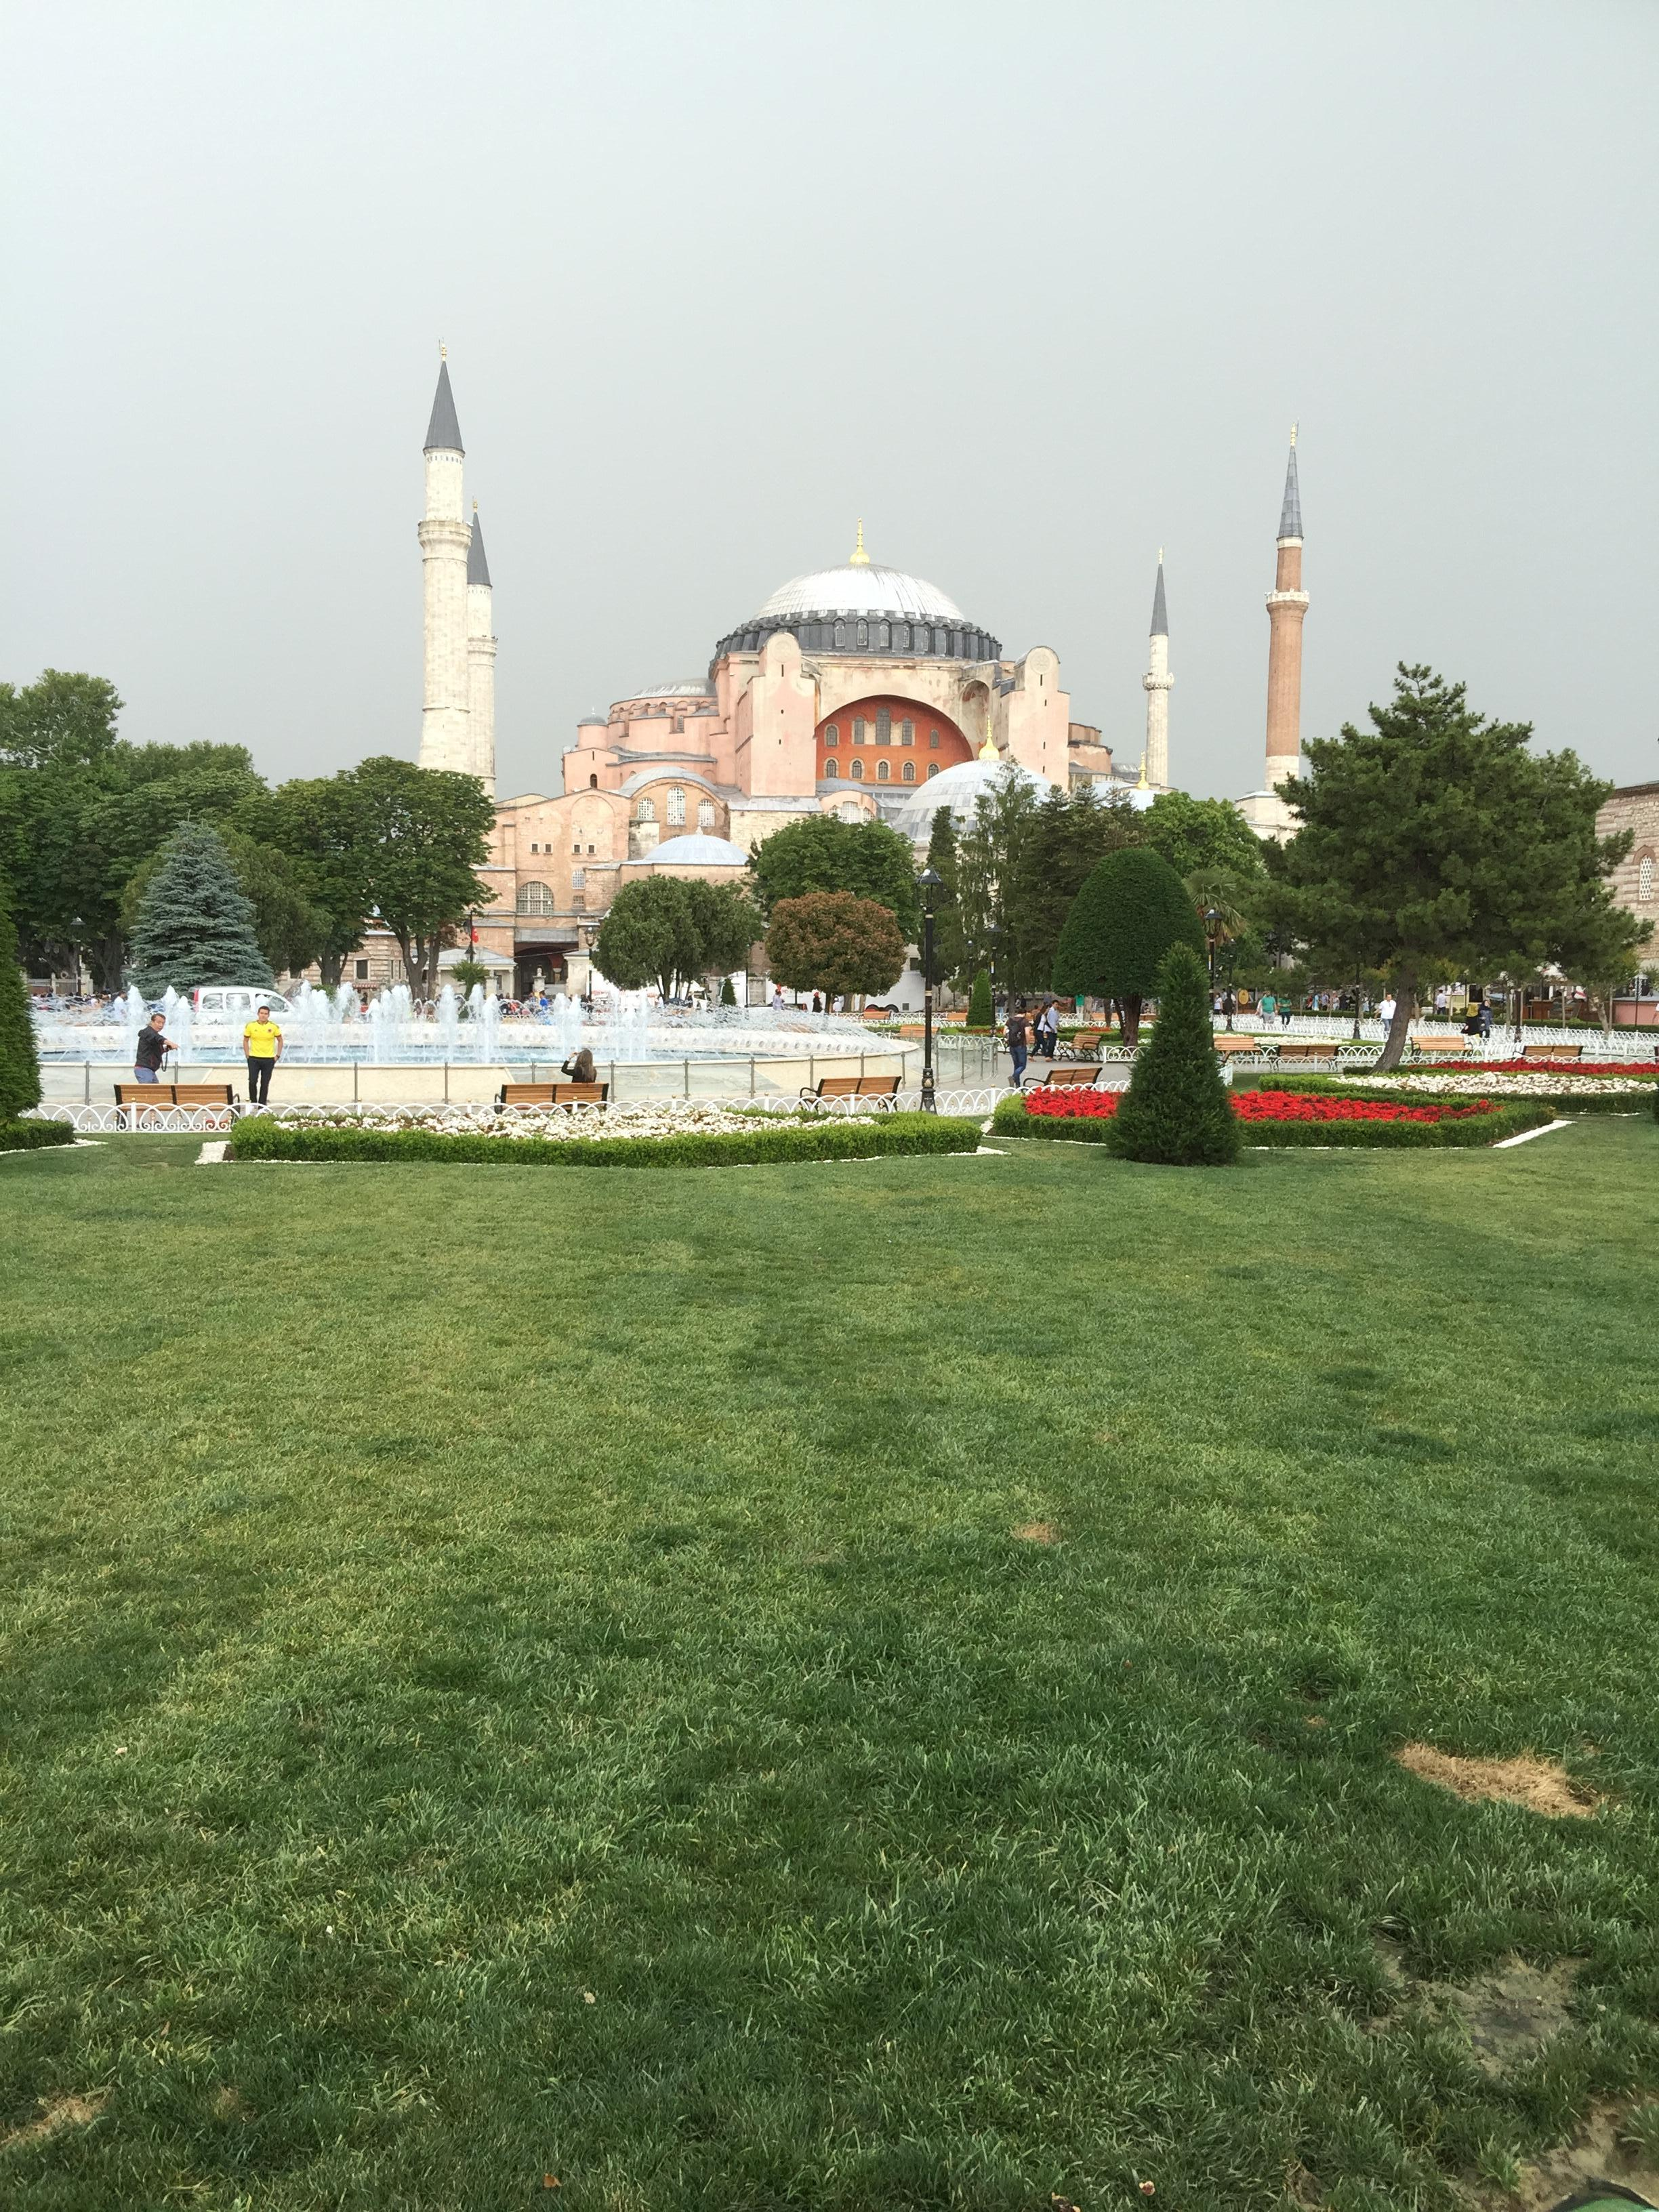 A close view of Blue Mosque